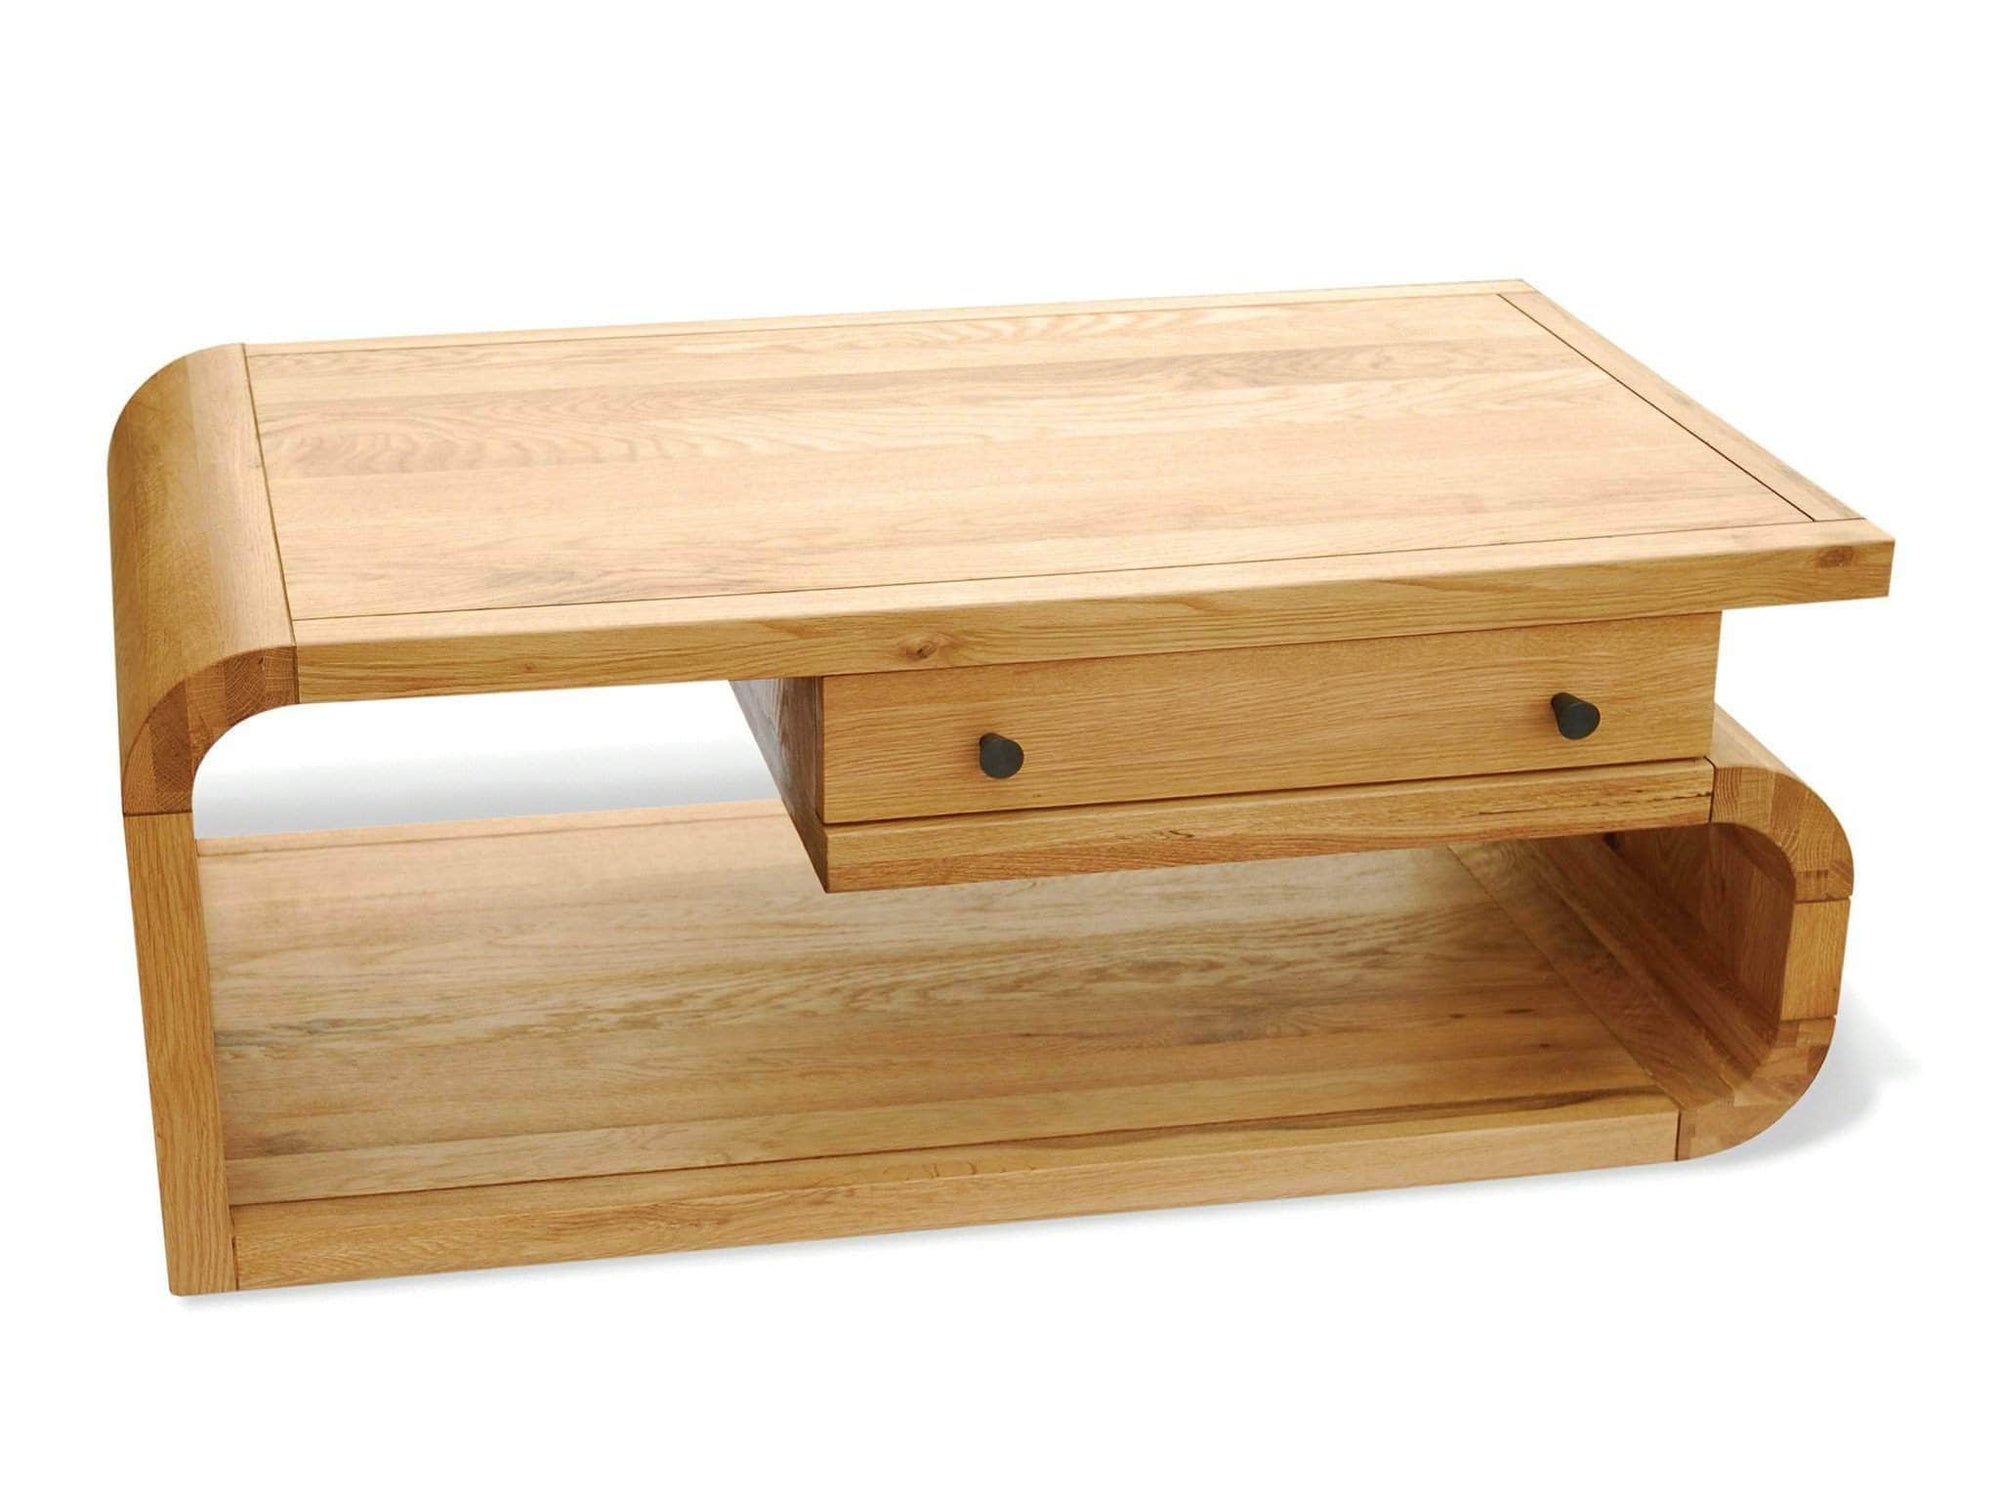 Lichfield designer style curved oak coffee table with drawer